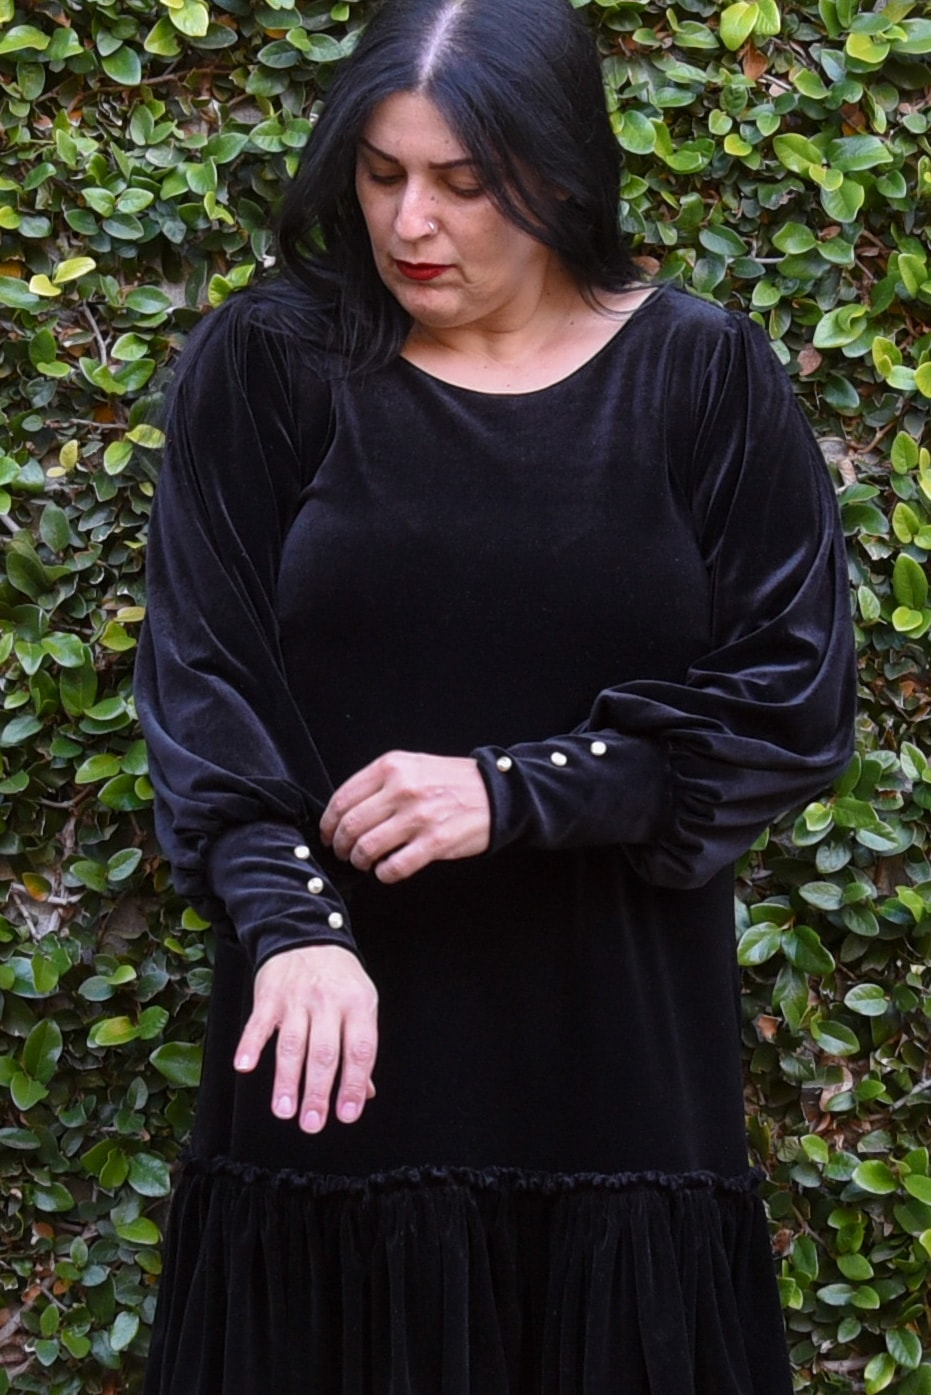 Image of a woman with long black hair and red lipstick wearing a black velvet dress with bishop sleeves and hem ruffles standing in front of a wall covered in vines.